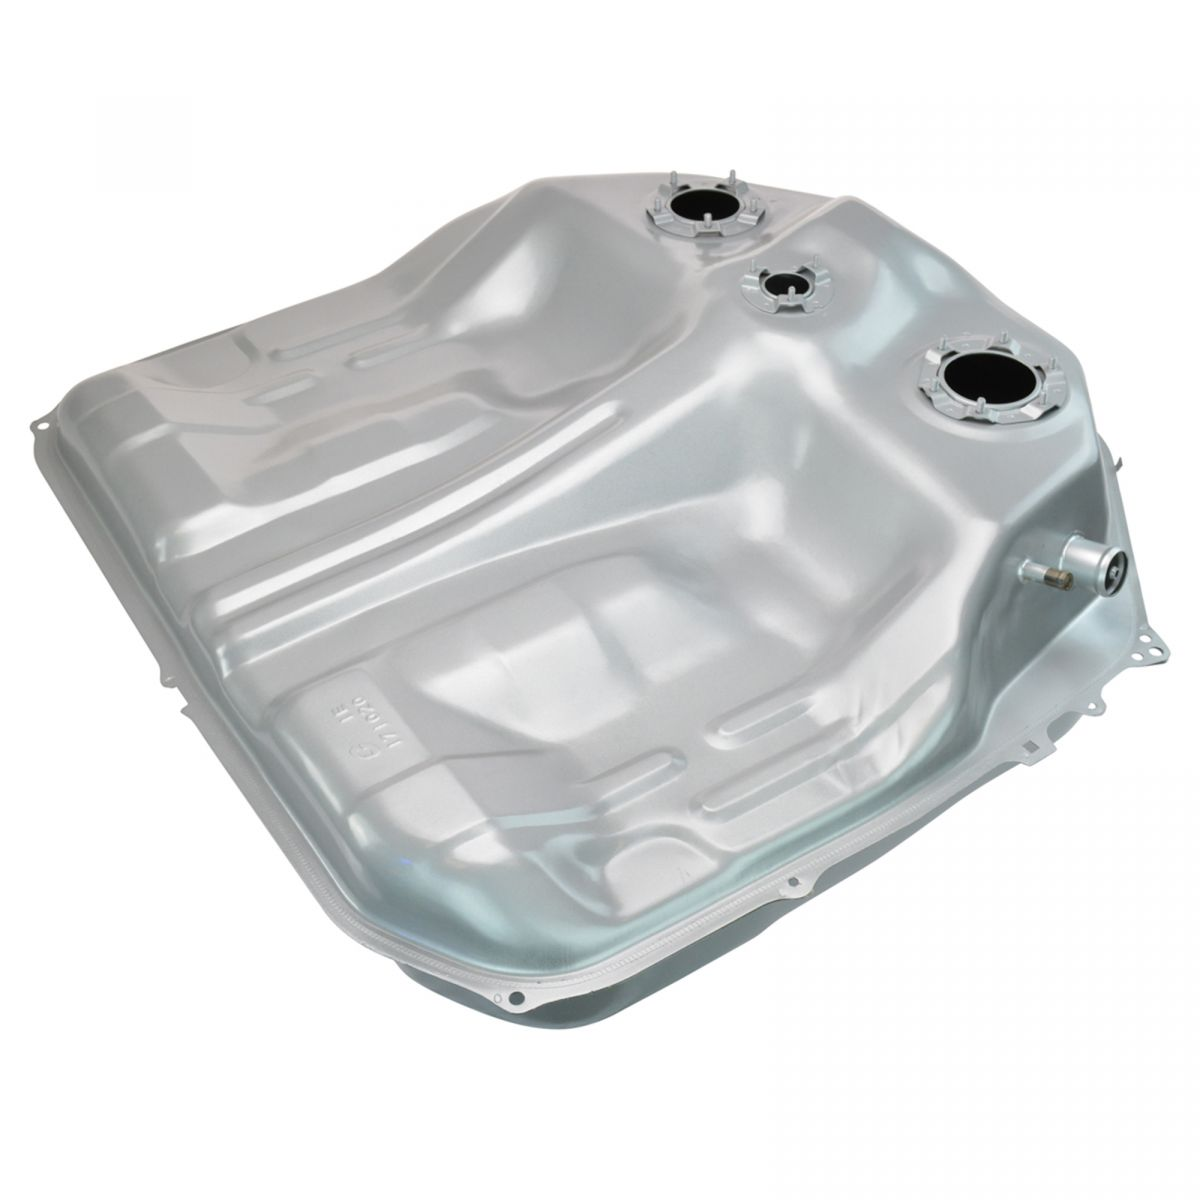 Fuel Gas Tank for Honda Accord Acura TL 3.2TL CL